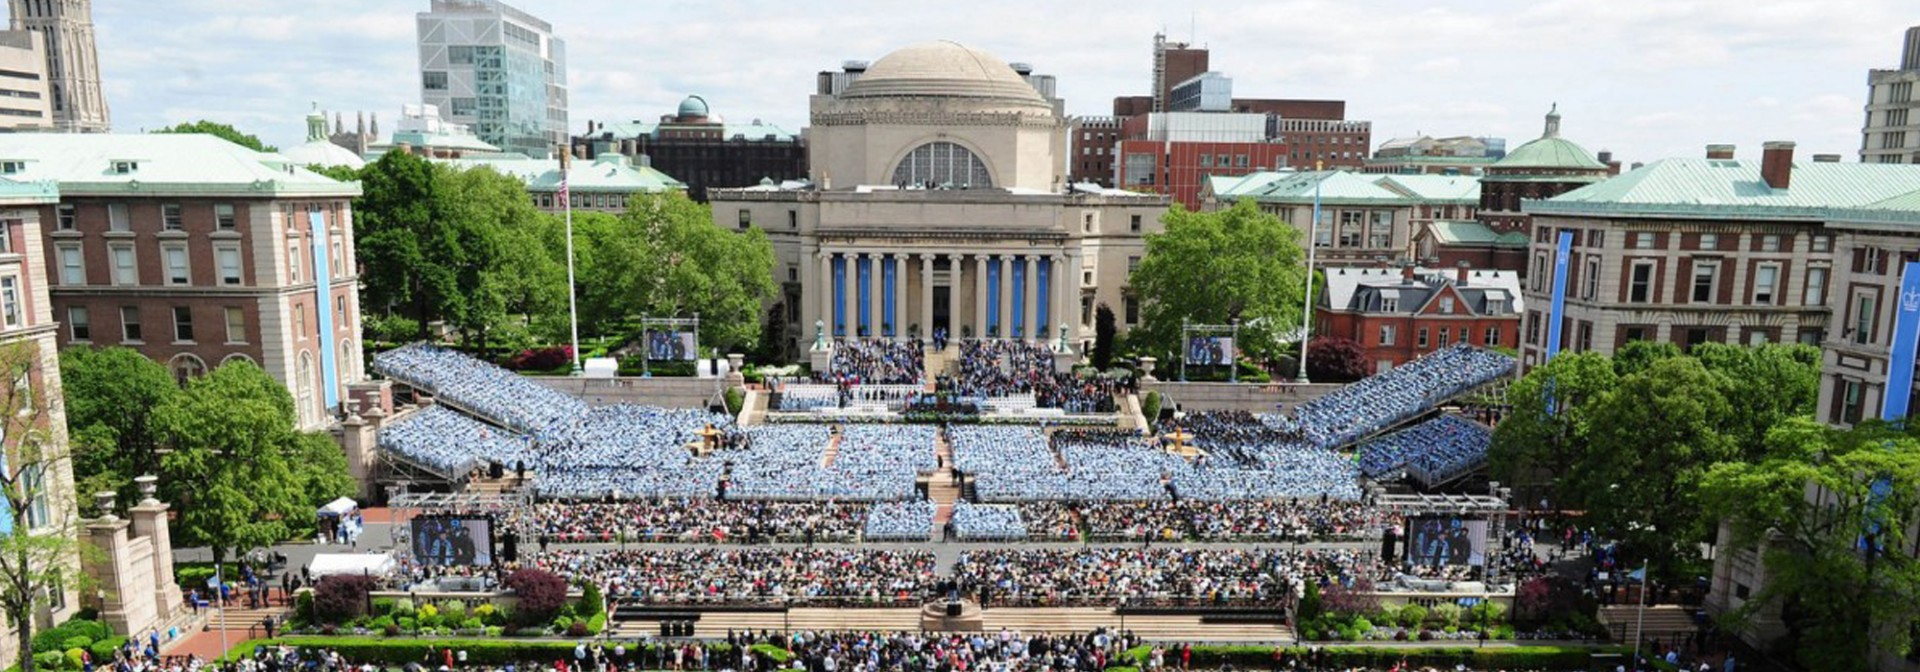 wide angle view of graduation at Columbia facing Low library